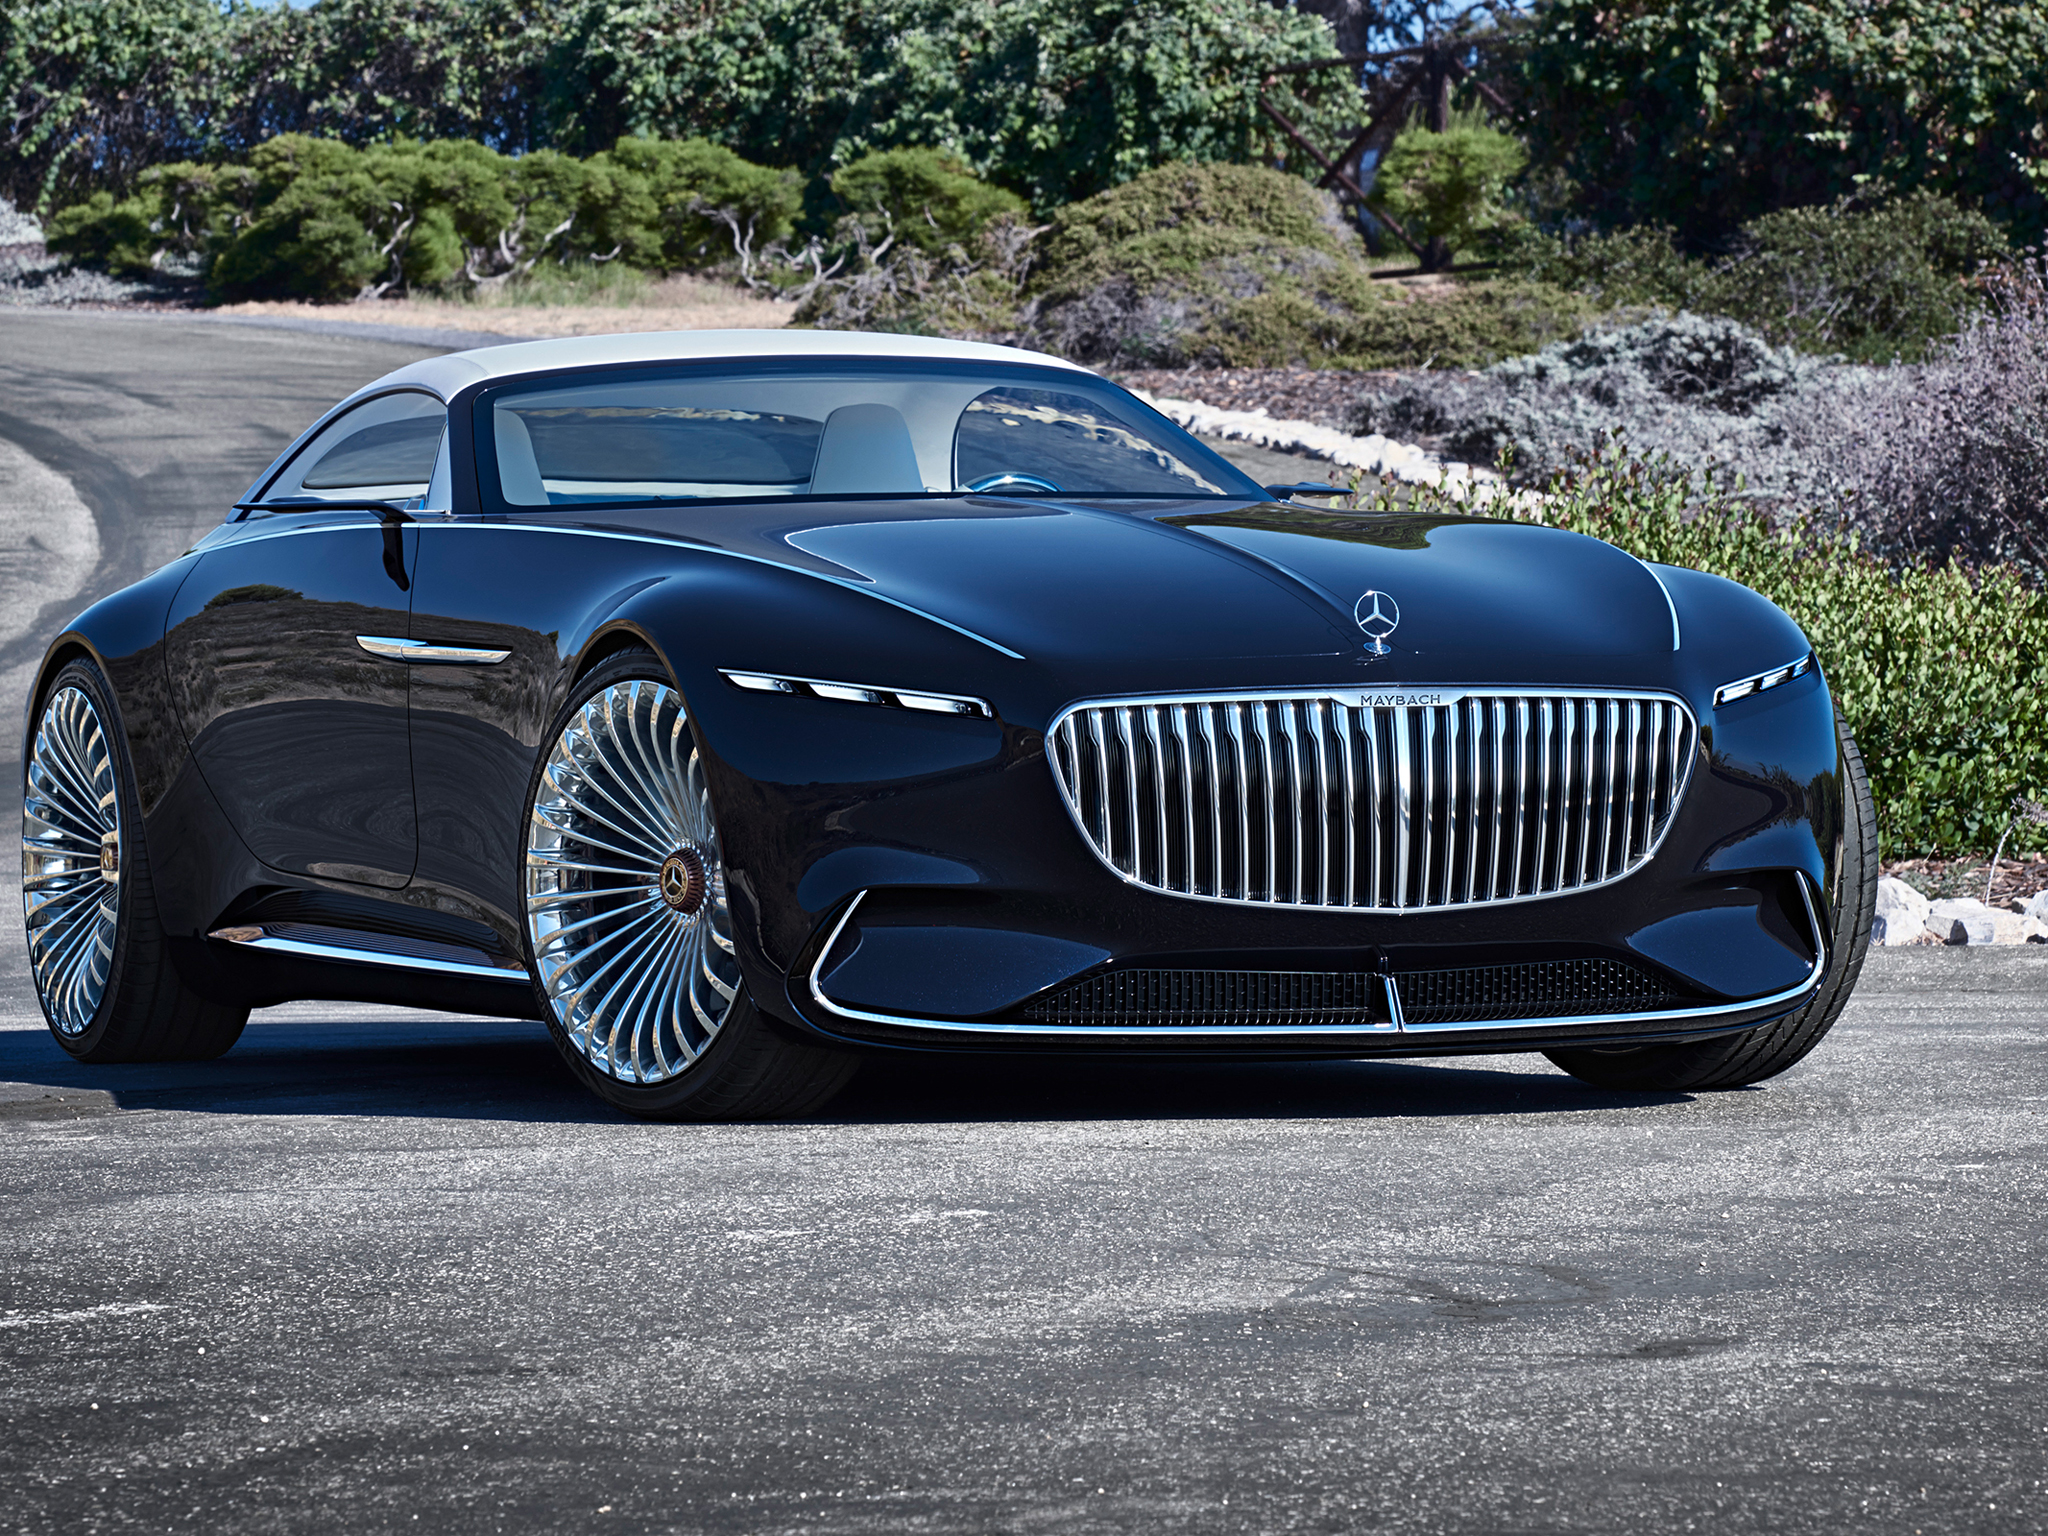 https://assets.mbusa.com/vcm/MB/DigitalAssets/FutureModels/Responsive/MAYBACH_6_CAB/GALLERY/2018-MAYBACH-6-CABRIOLET-FUTURE-GALLERY-007-WR-T.jpg